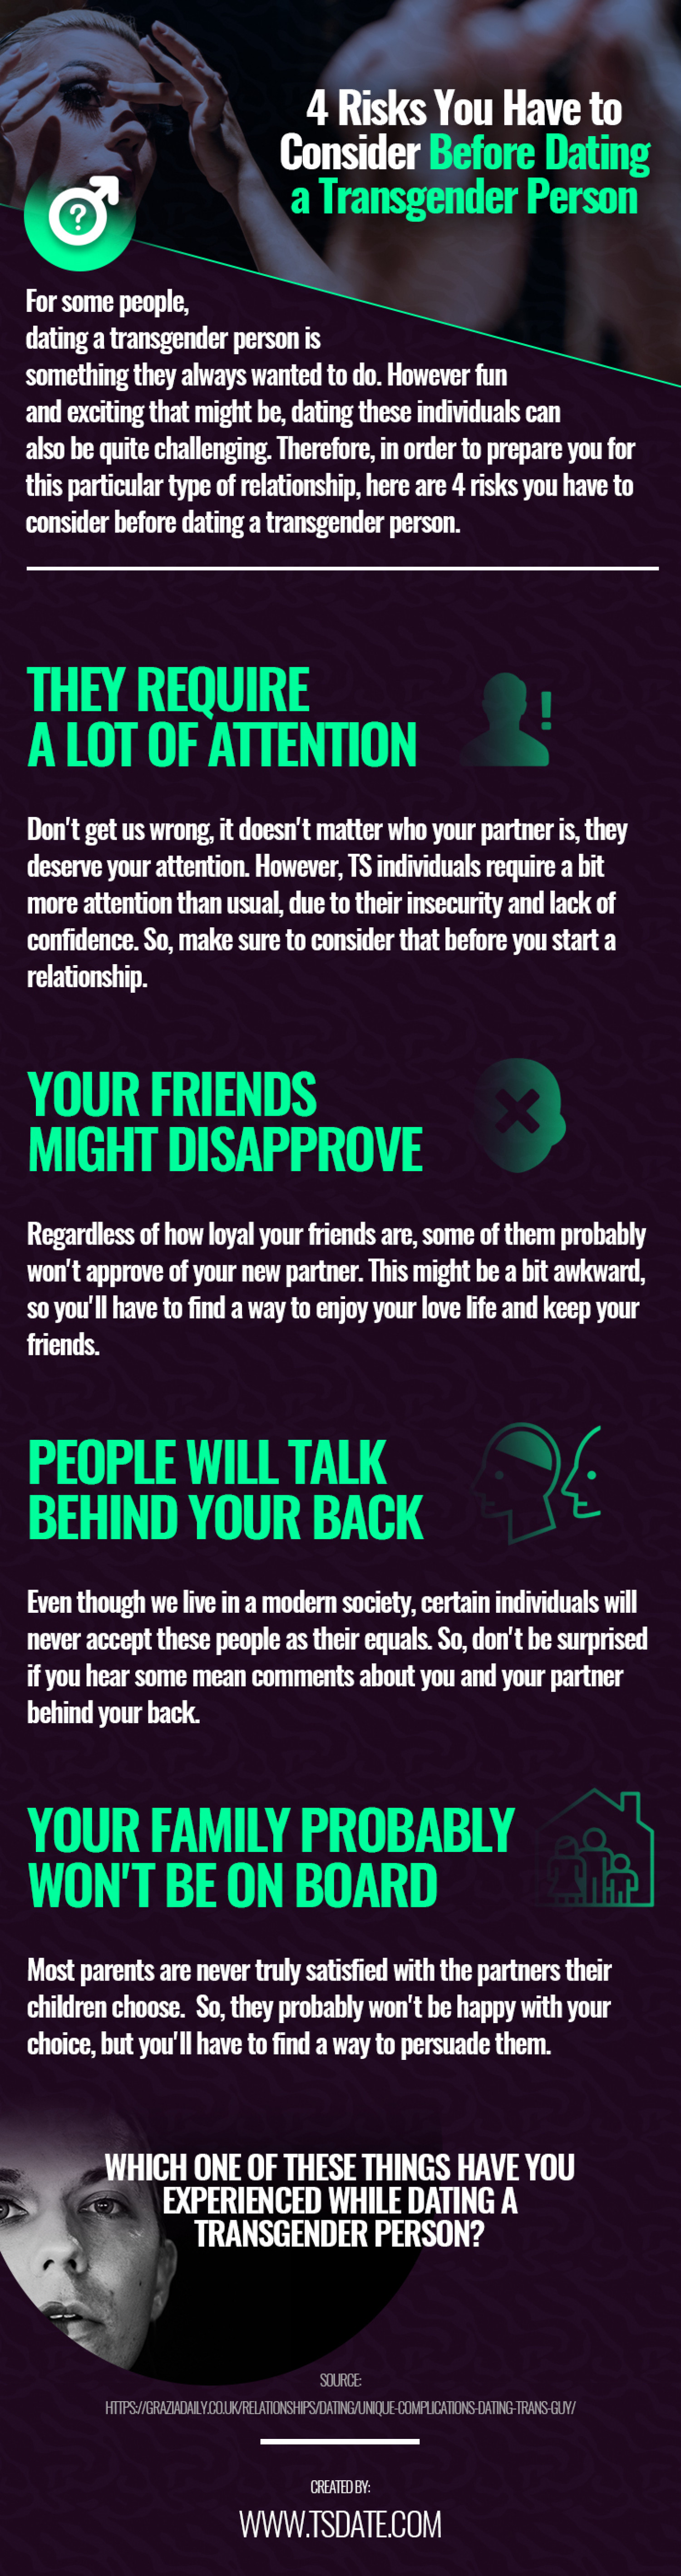 4 Risks You Have to Consider Before Dating a Transgender Person Infographic